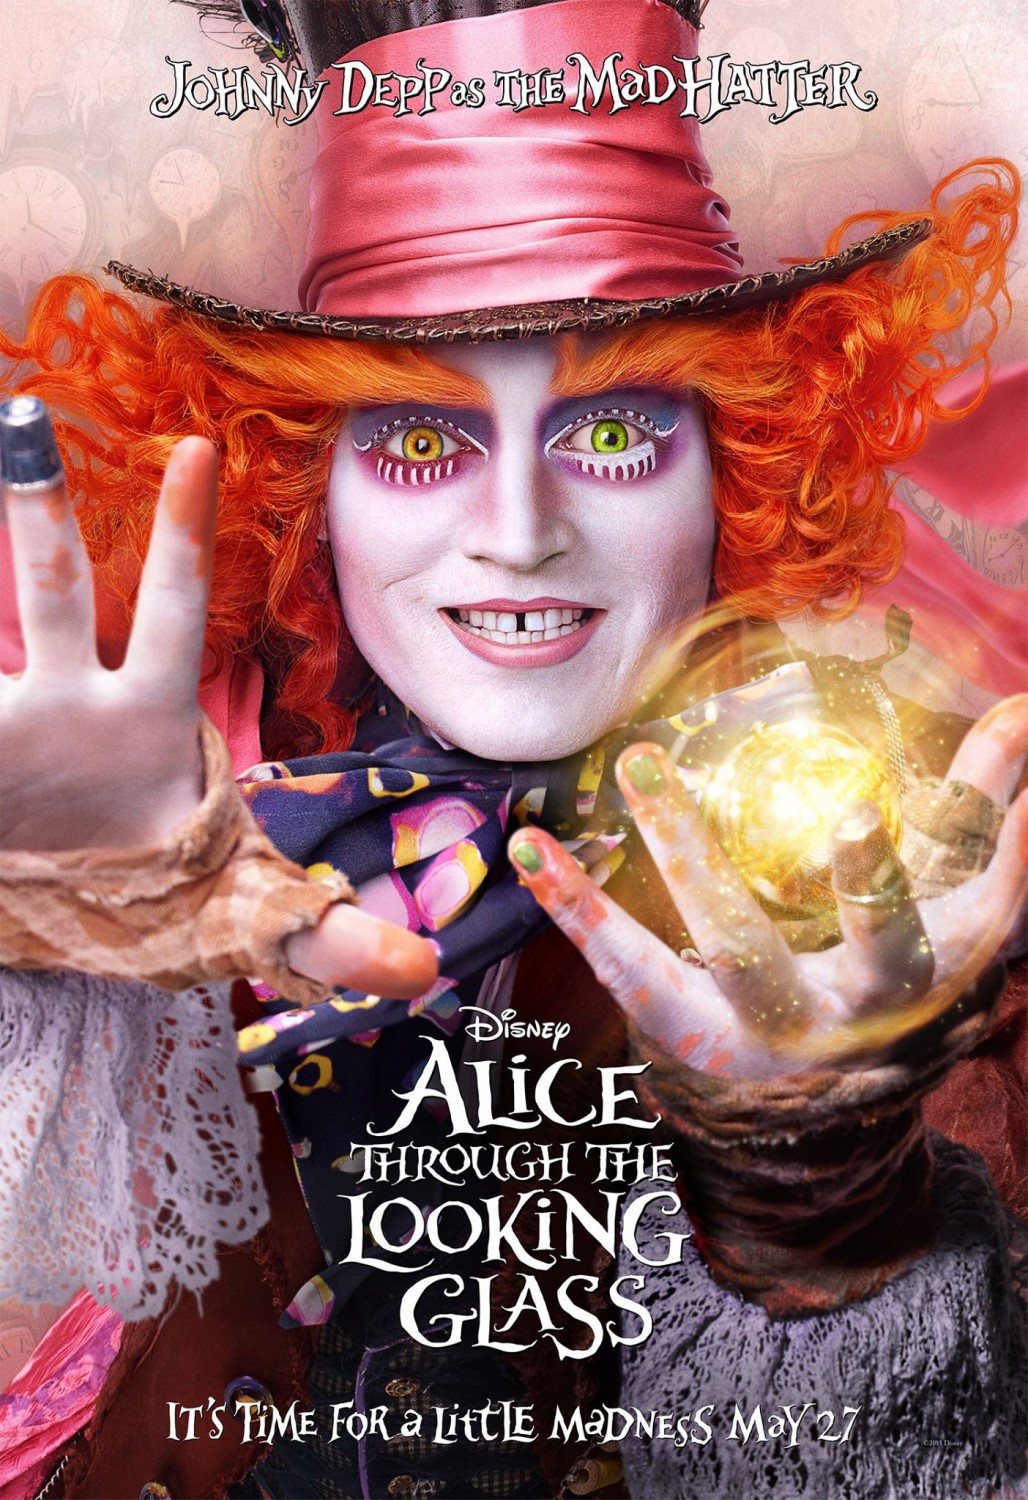 Alice Through The Looking Glass 2D/3D - Showing June 18, 19, 20 @ 7:00 PM MDT